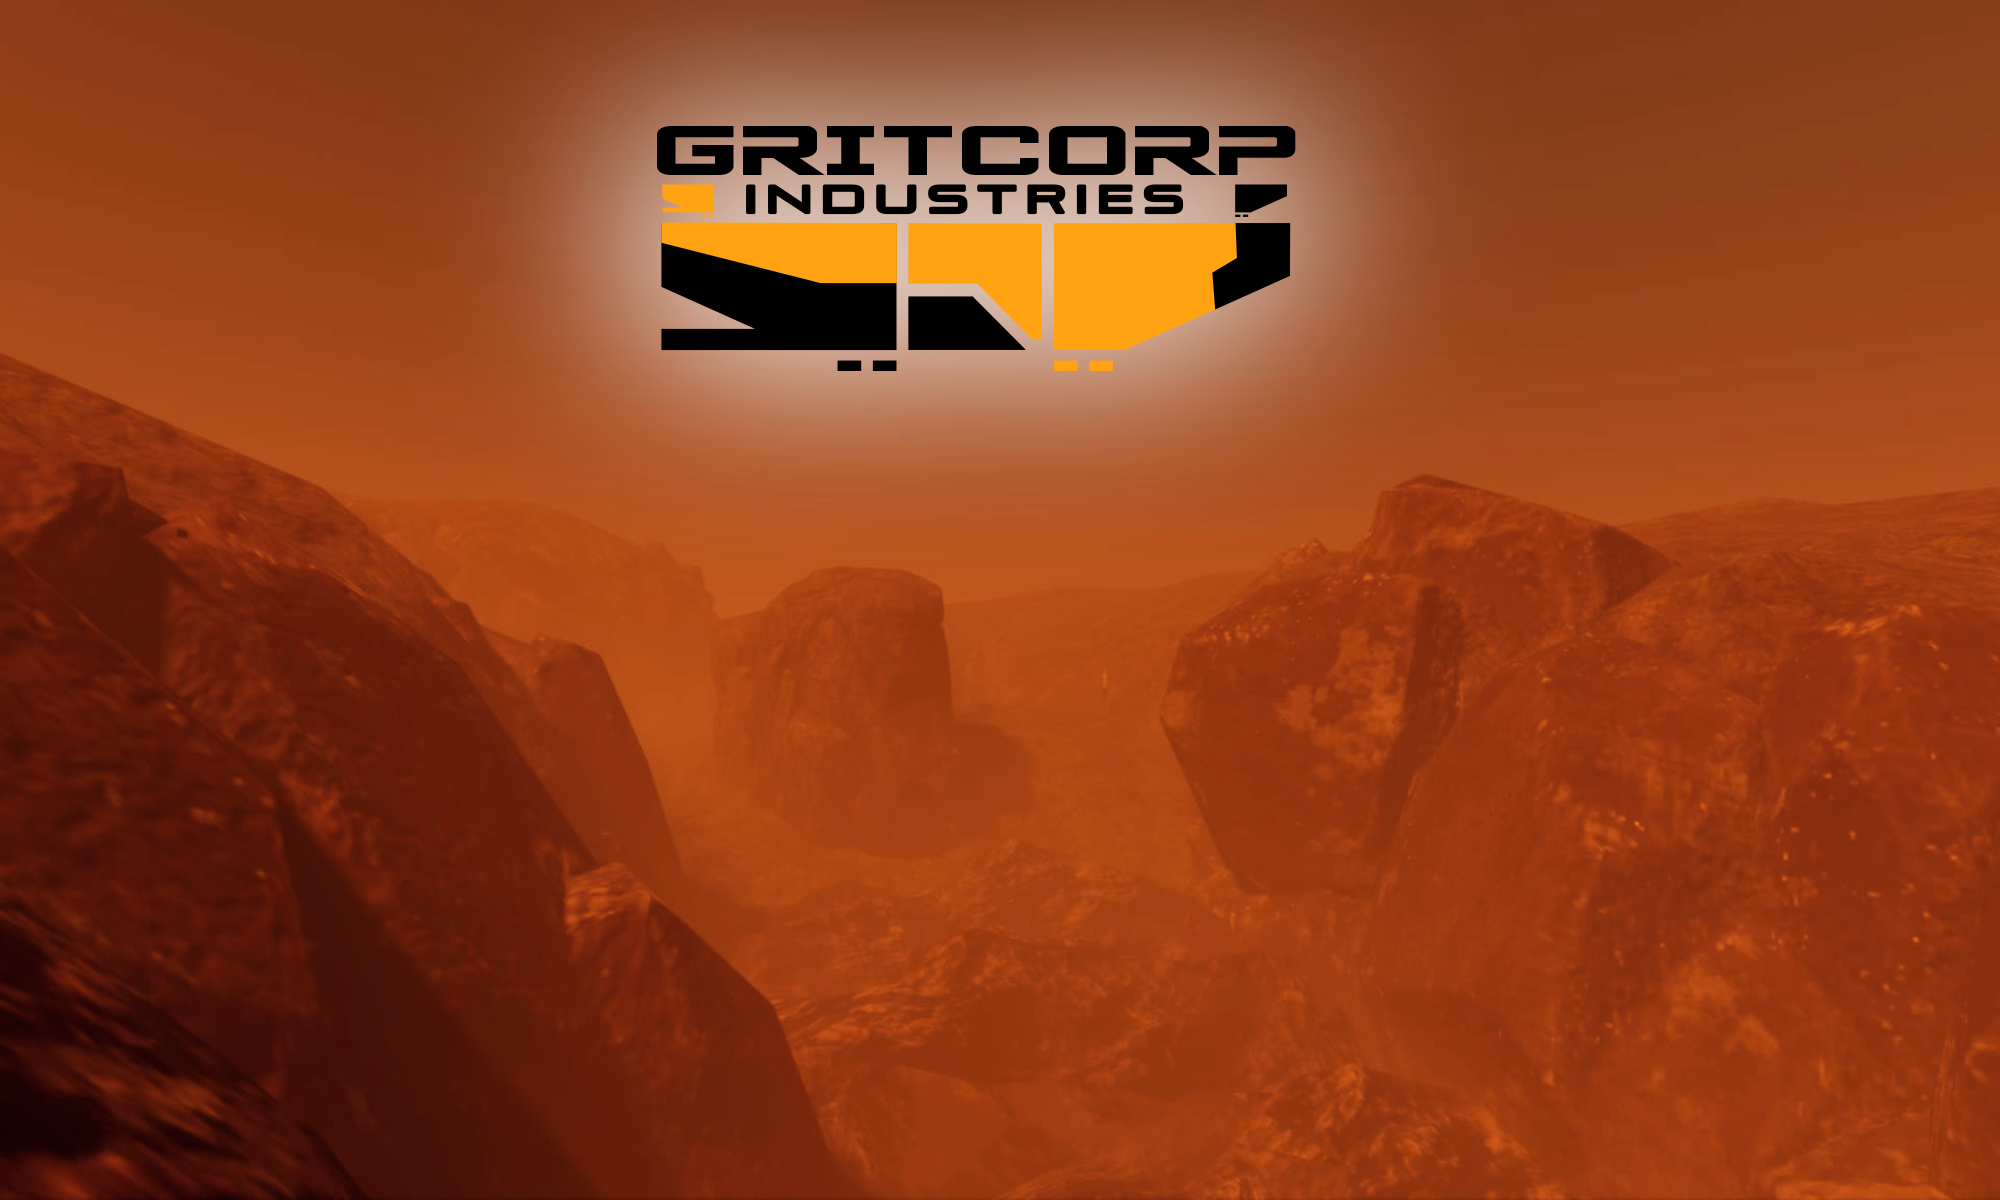 Gritcorp Industries